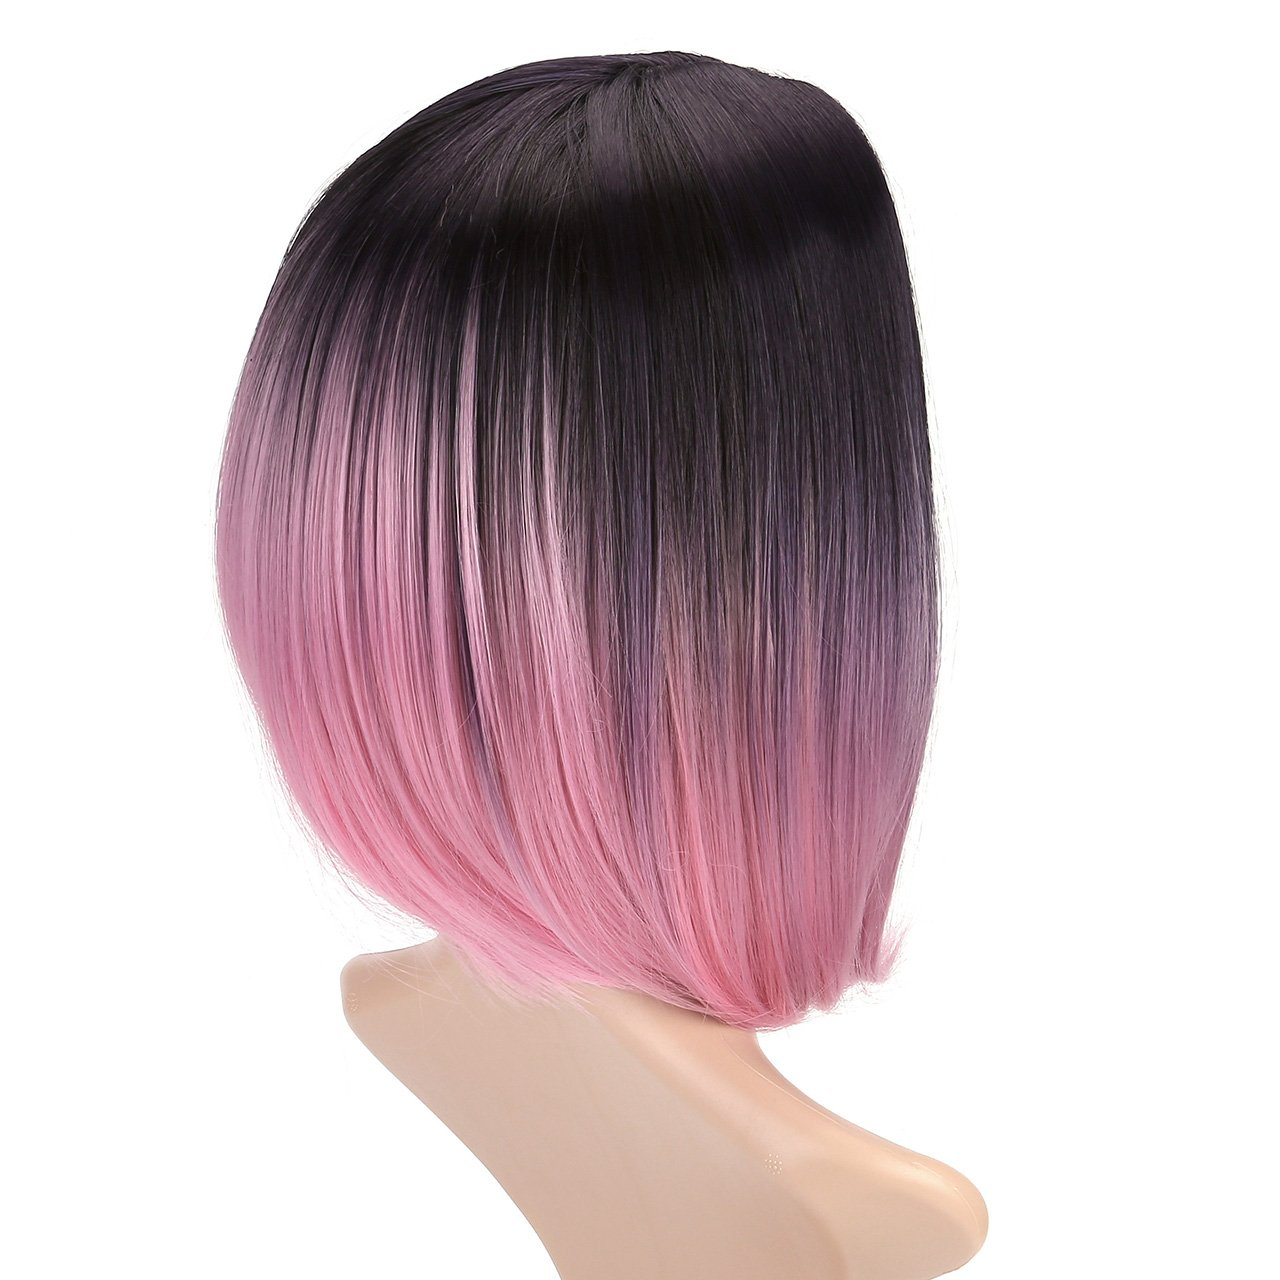 CCbeauty Ombre Bob Wig Straight With Middle Part Short Fashion Wig Cosplay Pink Ombre Wig Full Head Synthetic Wig for Women 14 Inches by CCbeauty (Image #4)